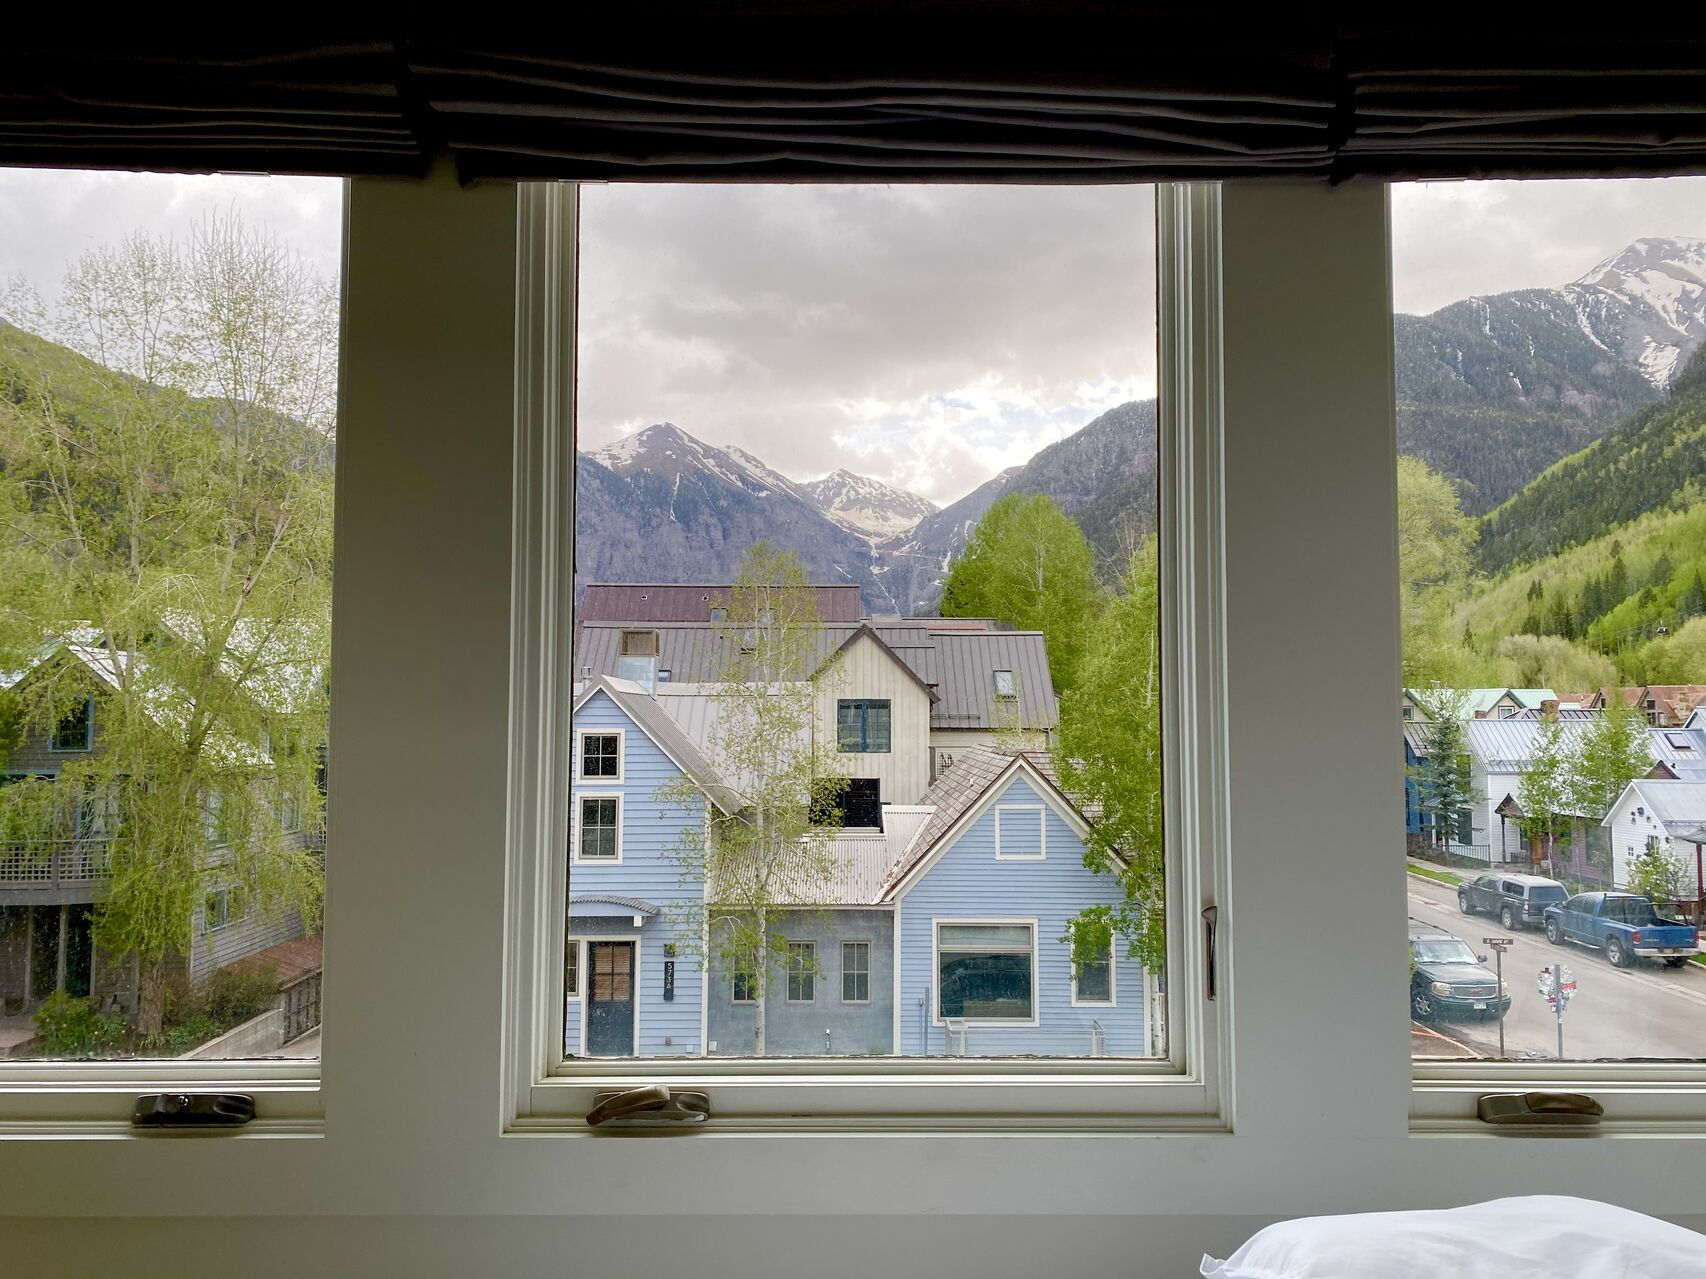 Outside view from inside our Telluride condo rental